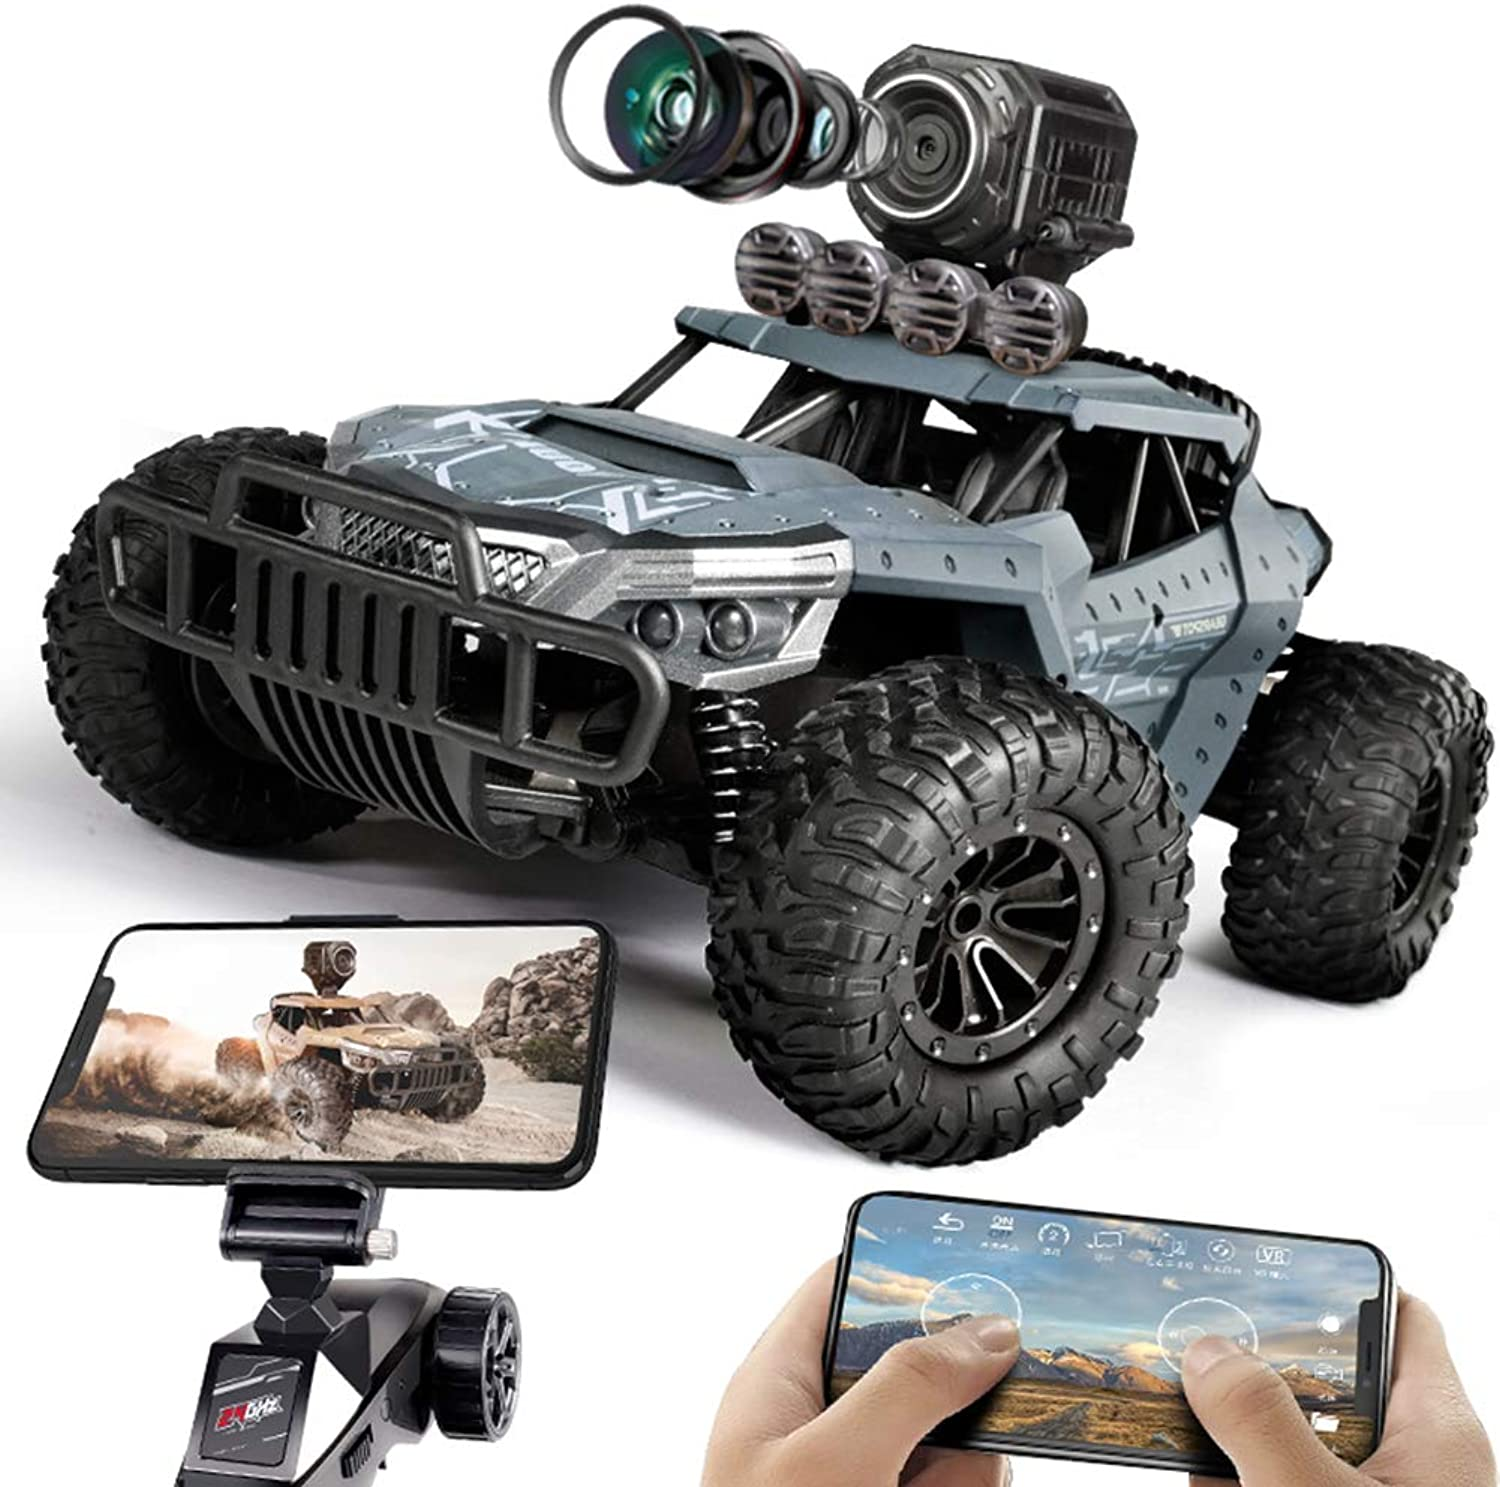 Flydancing 2.4Ghz Remote Control OffRoad Vehicle Wireless Camera Rechargeable for Kids Adults Hobby Toy